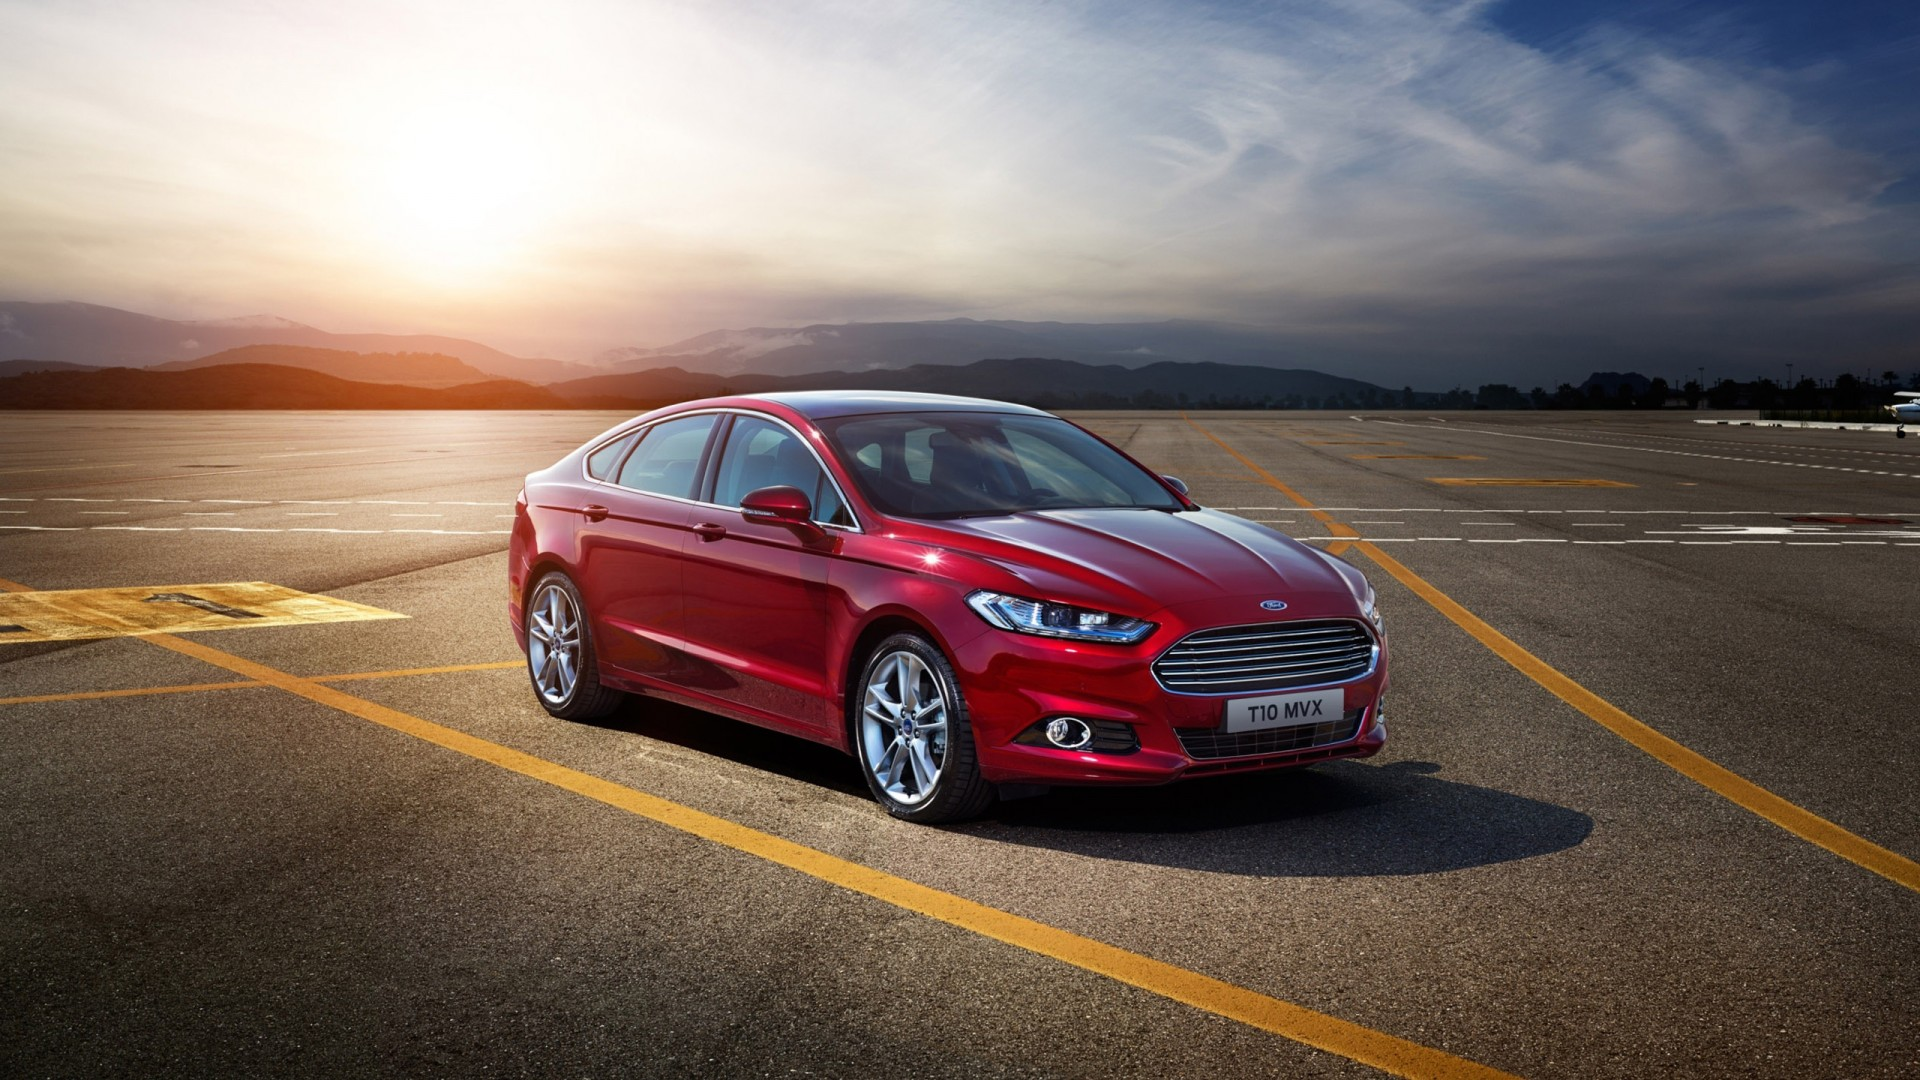 2015 Ford Mondeo Wallpaper | HD Car Wallpapers | ID #4842